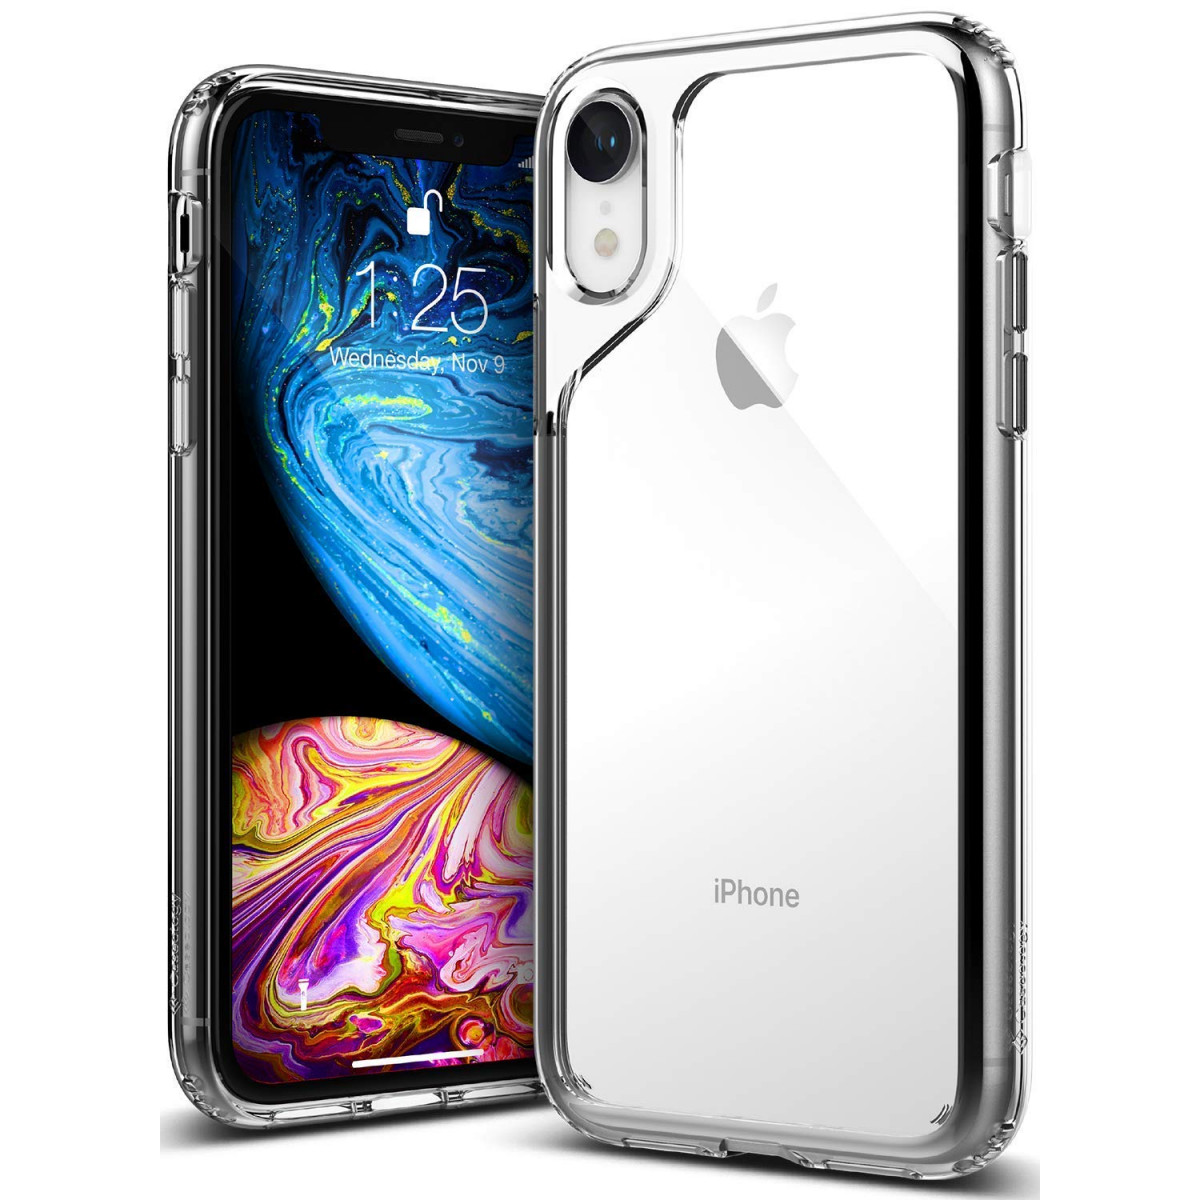 huge discount f8a5f 6175d Caseology [Waterfall Series] iPhone XR Case - [Transparent/Minimal] - Clear